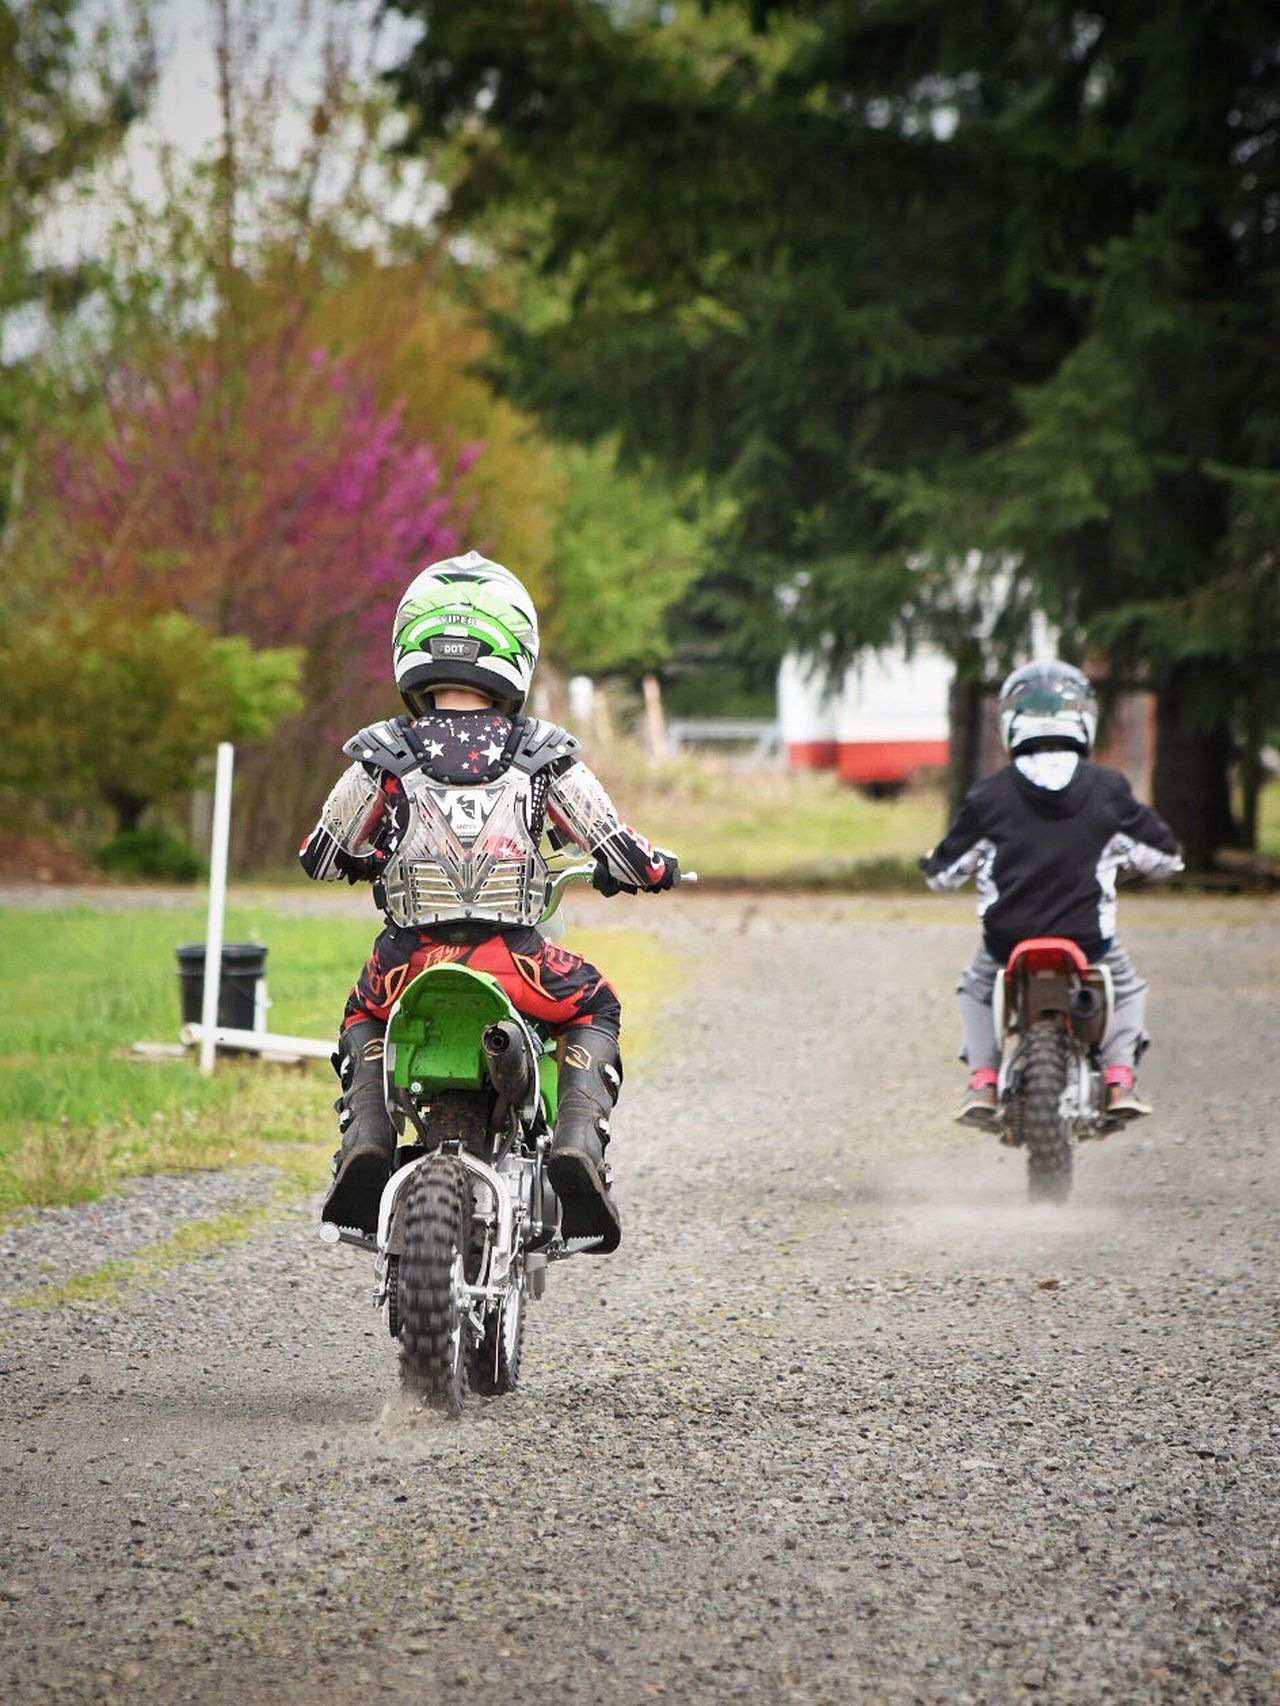 Riding Real People Motorcycle Helmet Adventure Headwear Two People Lifestyles Crash Helmet Safety Protection Transportation Speed Togetherness Motocross Day Outdoors Sports Race Sports Helmet Full Length The Great Outdoors - 2017 EyeEm Awards Youth Culture Childhood Memories Youth Of Today Dirtbike